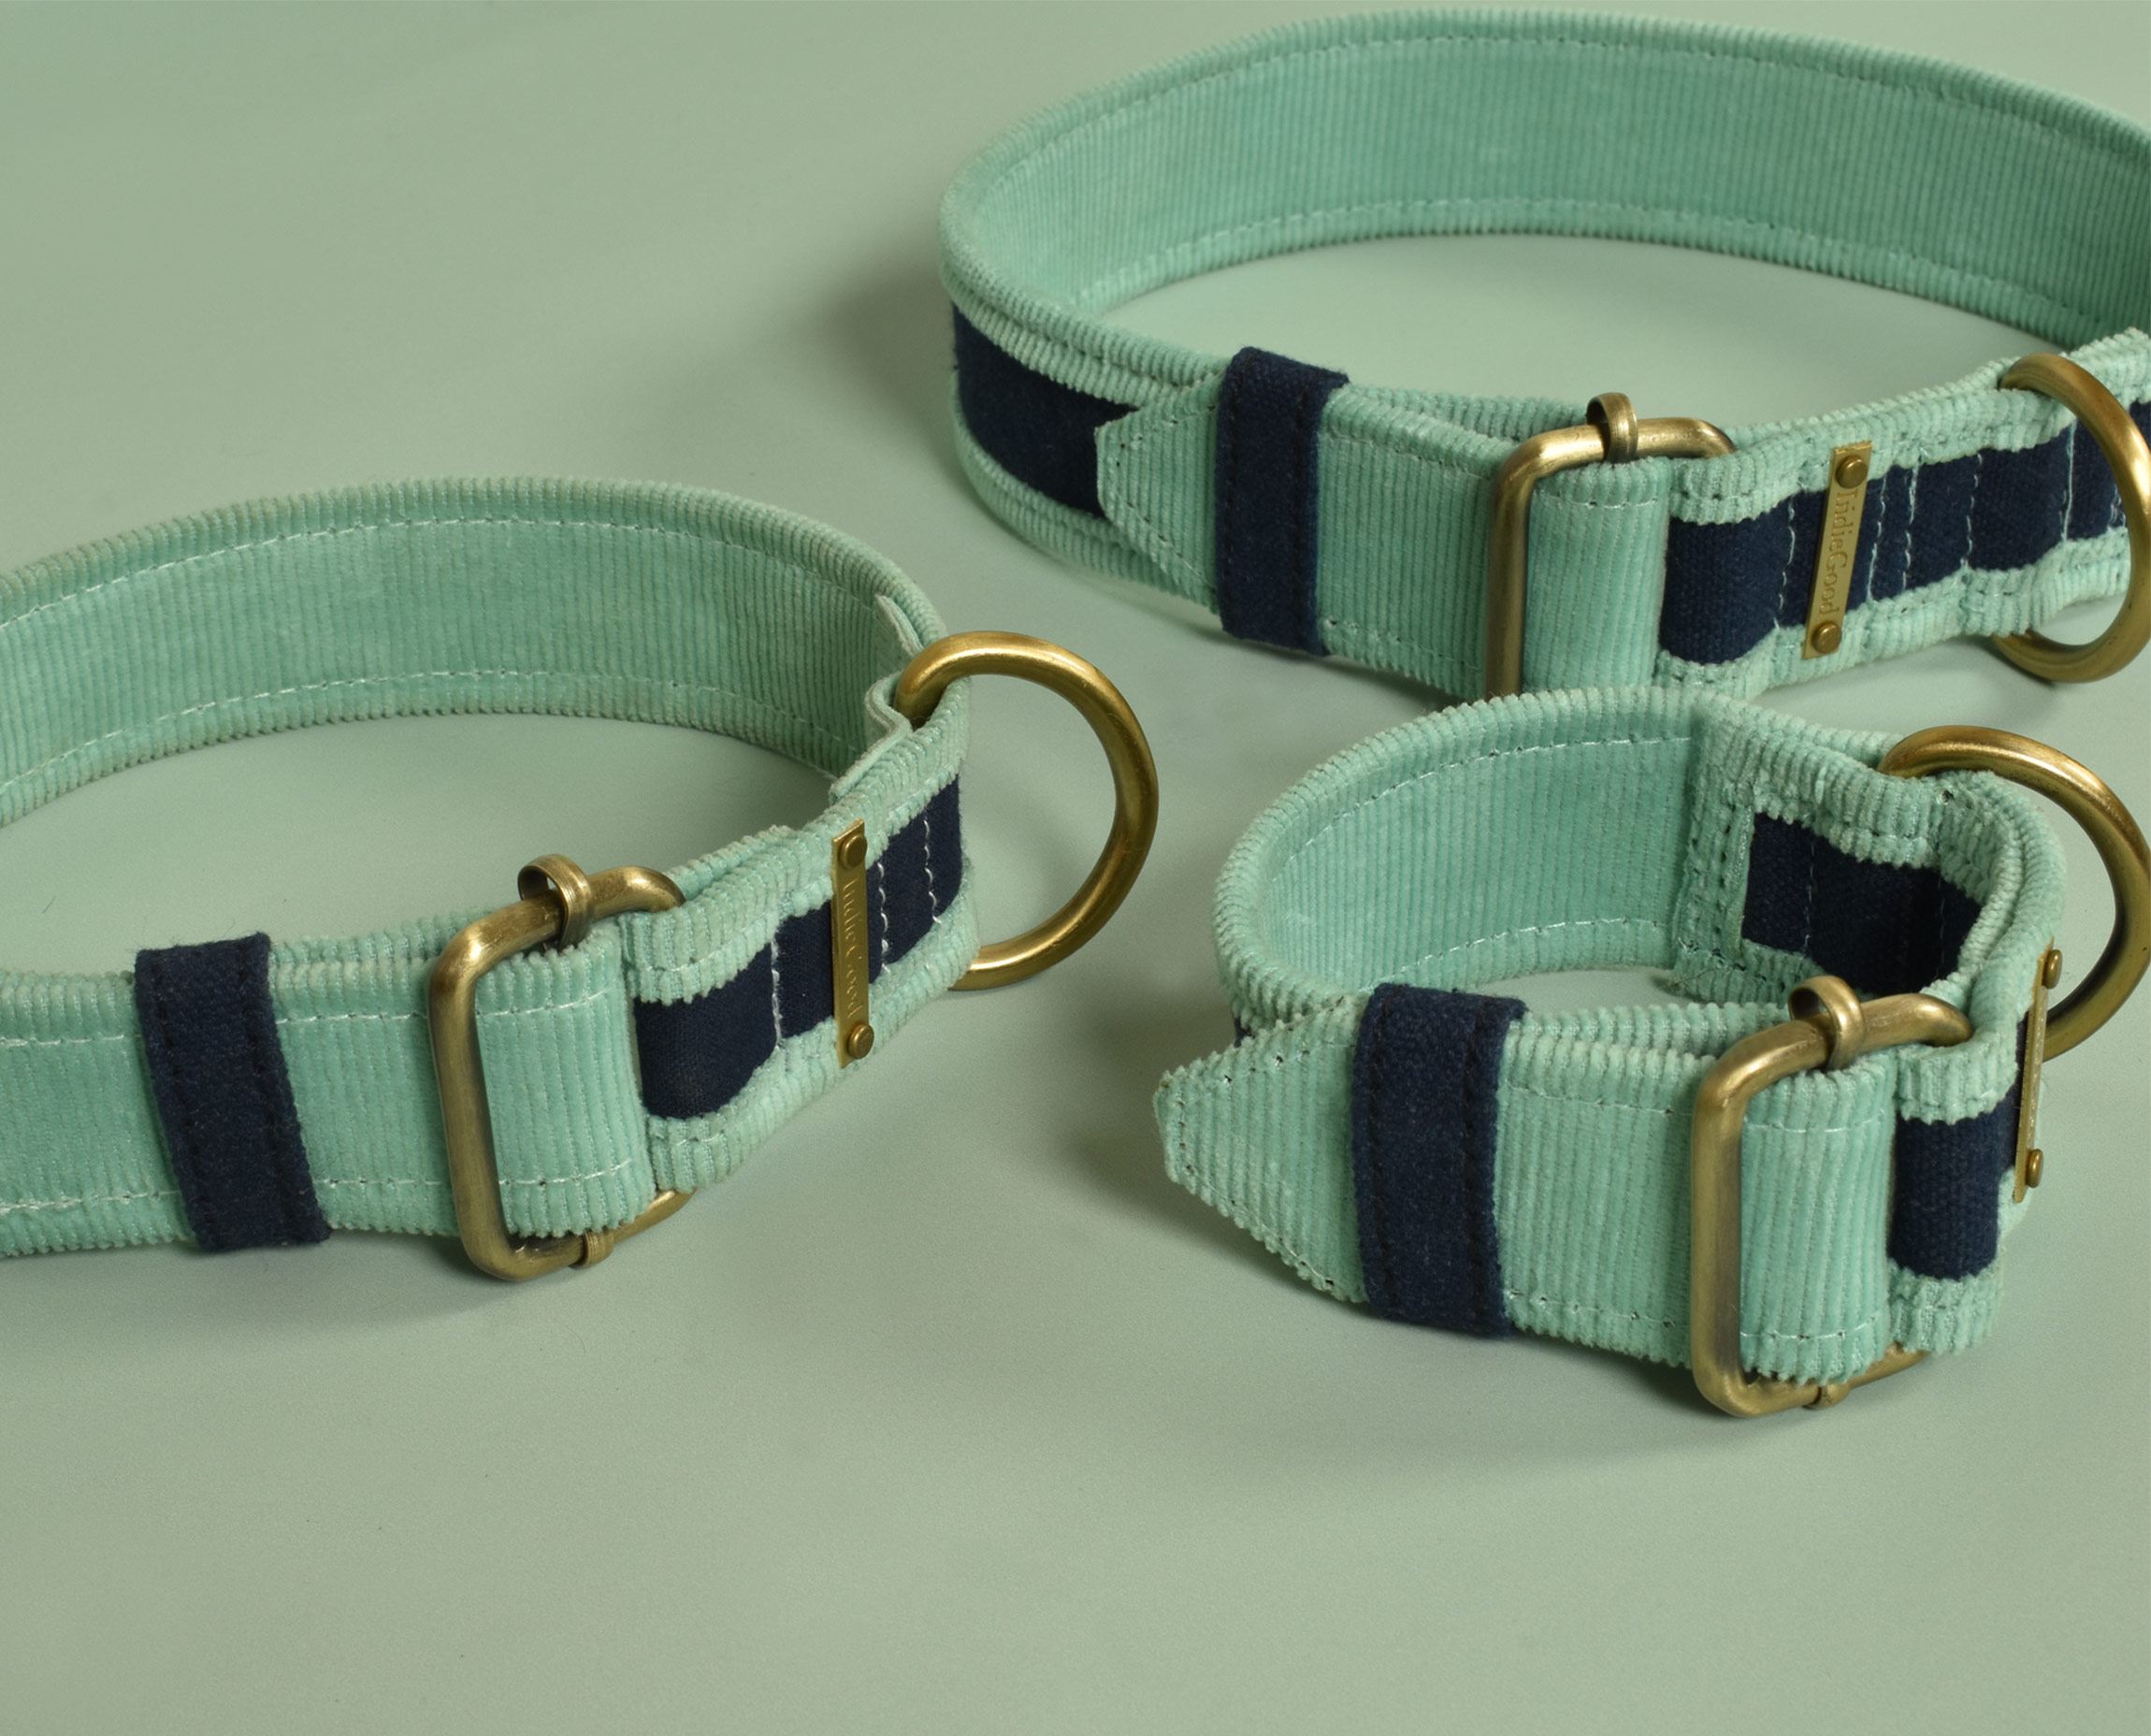 """""""This Collar for your furry friend is made of organic Corduroy and Canvas that is soft on your pooch's skin so that nothing can tamper his/her playtime. When you attach it to the leash, the collar is sturdy and prevents rashes on your beloved fur ball. There are 3 available sizes to make sure our collars are pawfect for every pooch. • Suitable for all dog breeds • Adjustable to give the right fit • Easy to wear buckle closing • The collar is double stitched for strength and durability • Skin friendly"""""""